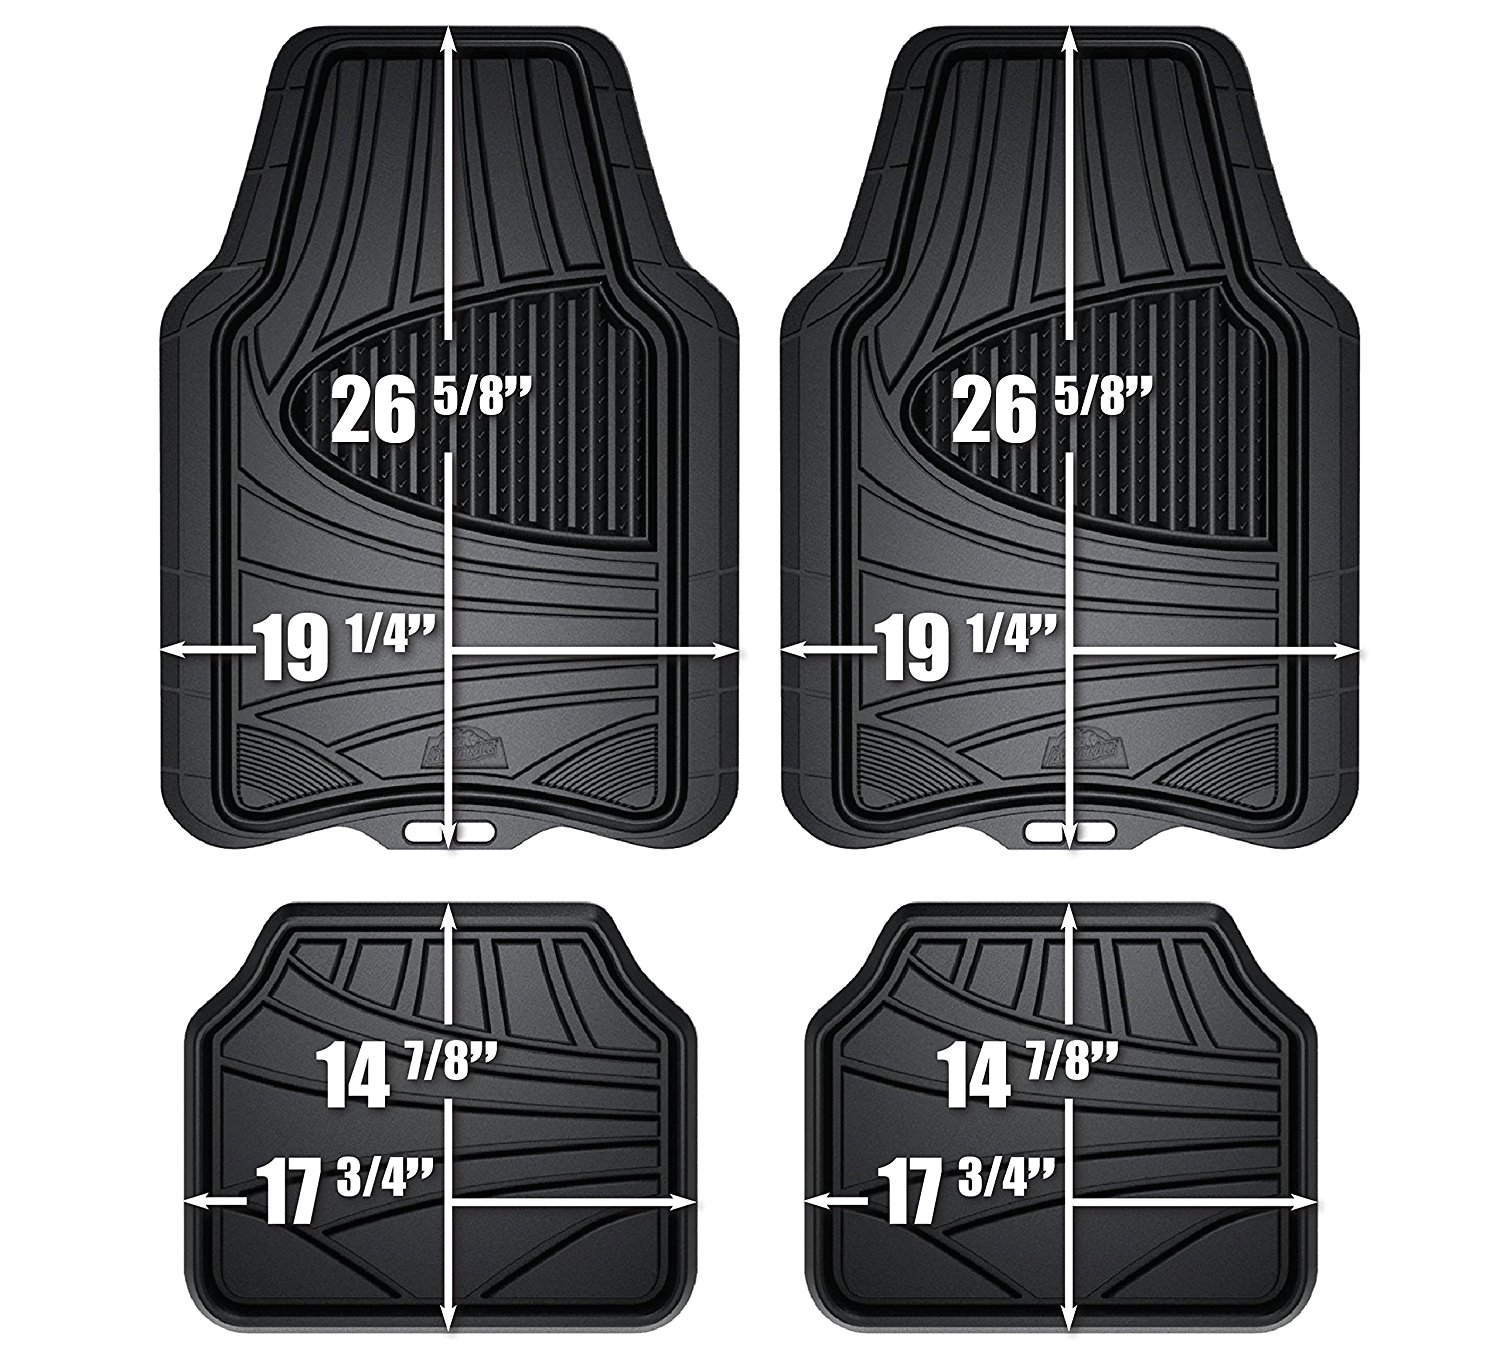 amazon com custom accessories armor all 78840zn 4 piece black all season rubber floor mat automotive